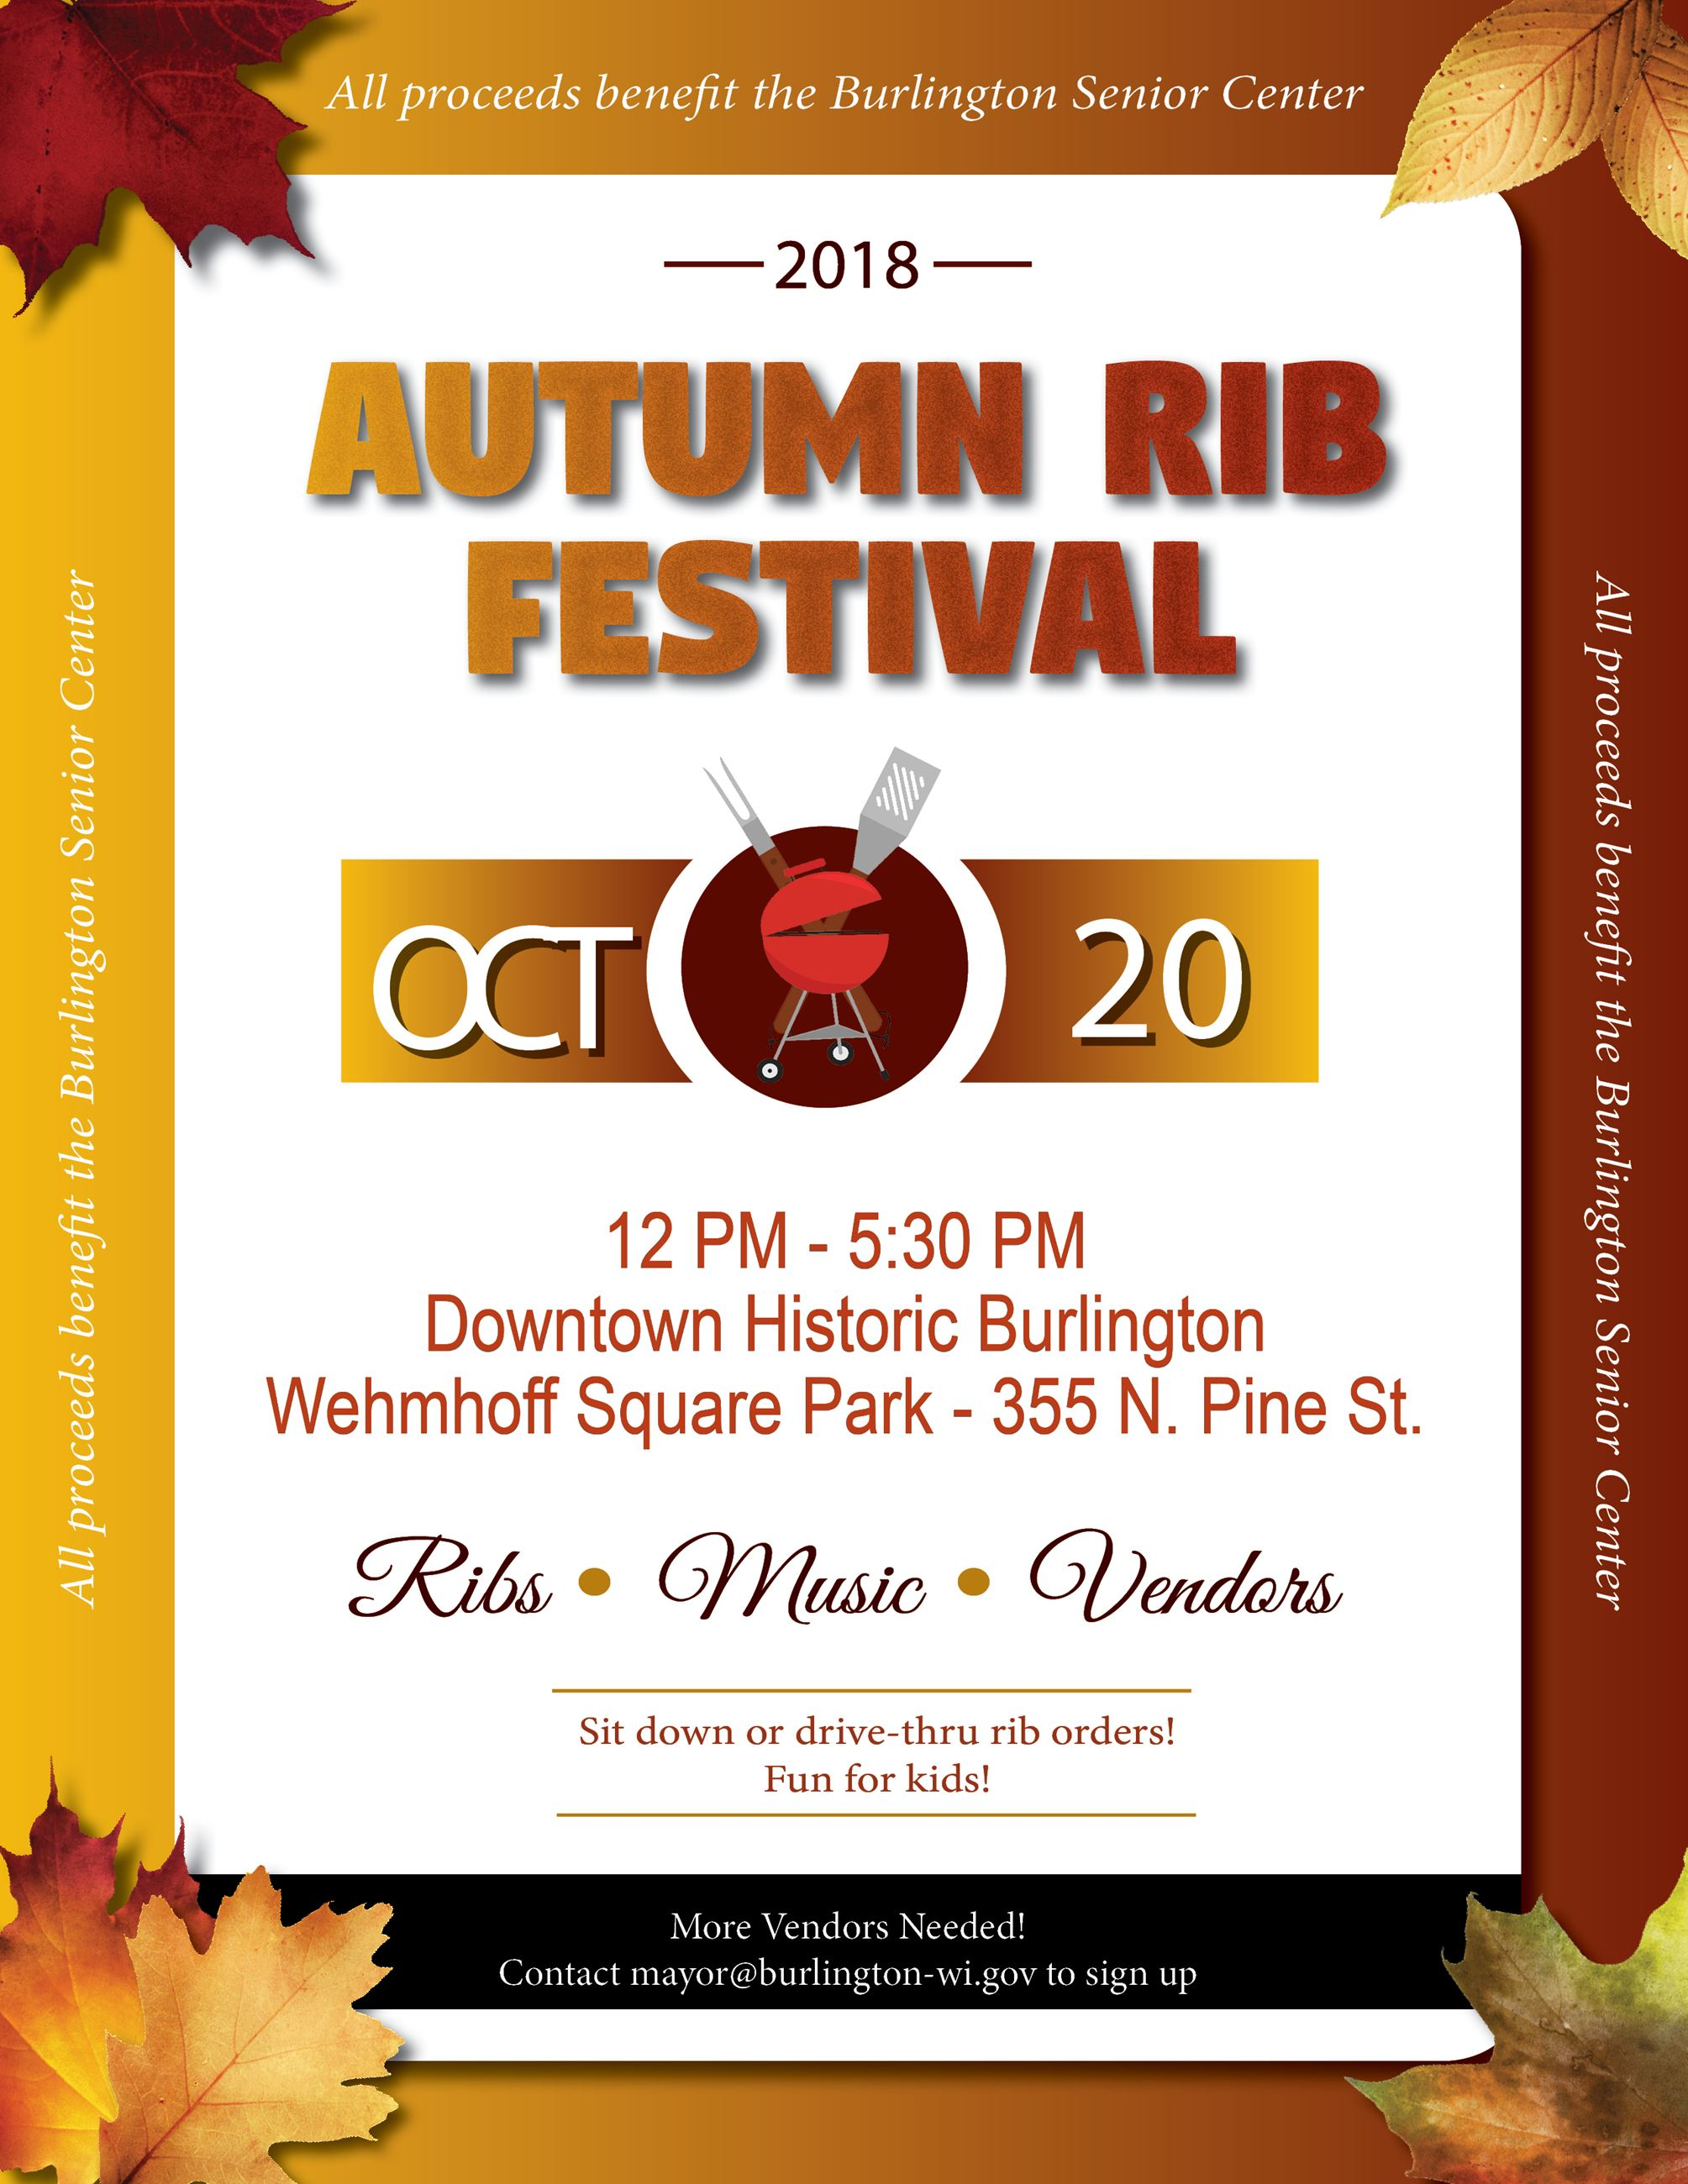 Autumn Fest - Oct 22, 2018 - Ribs